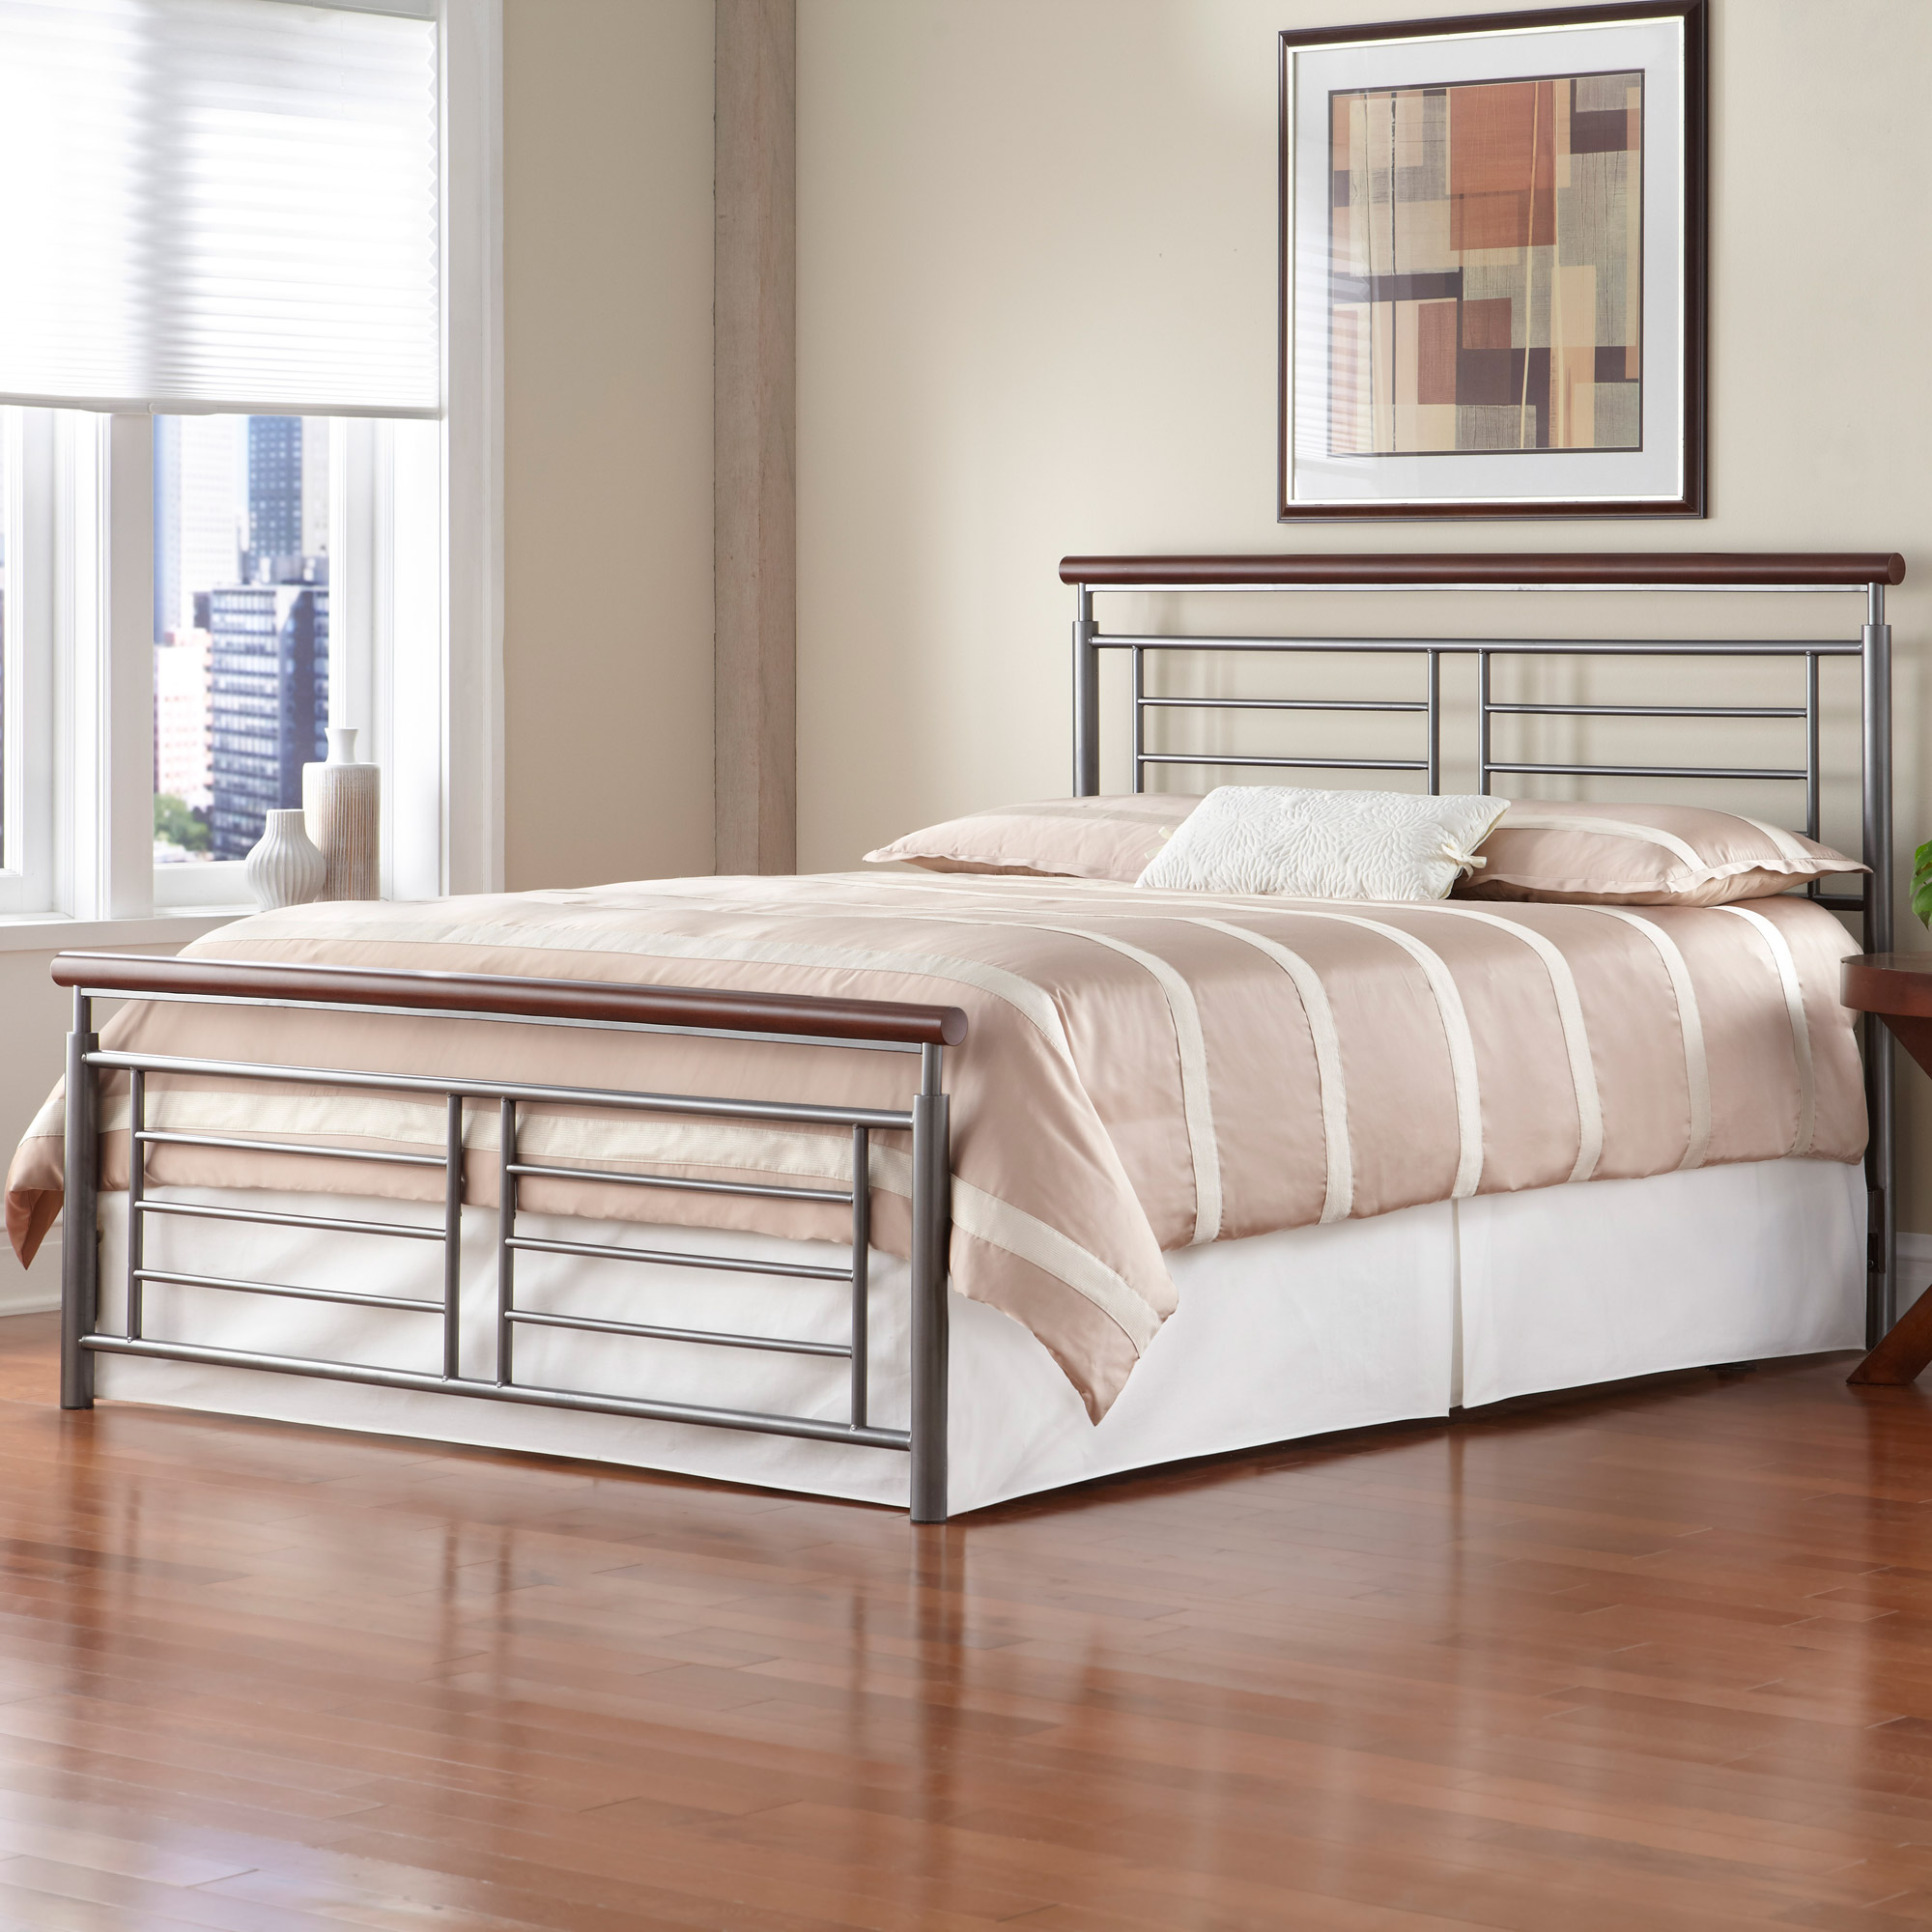 fontane iron bed metal design